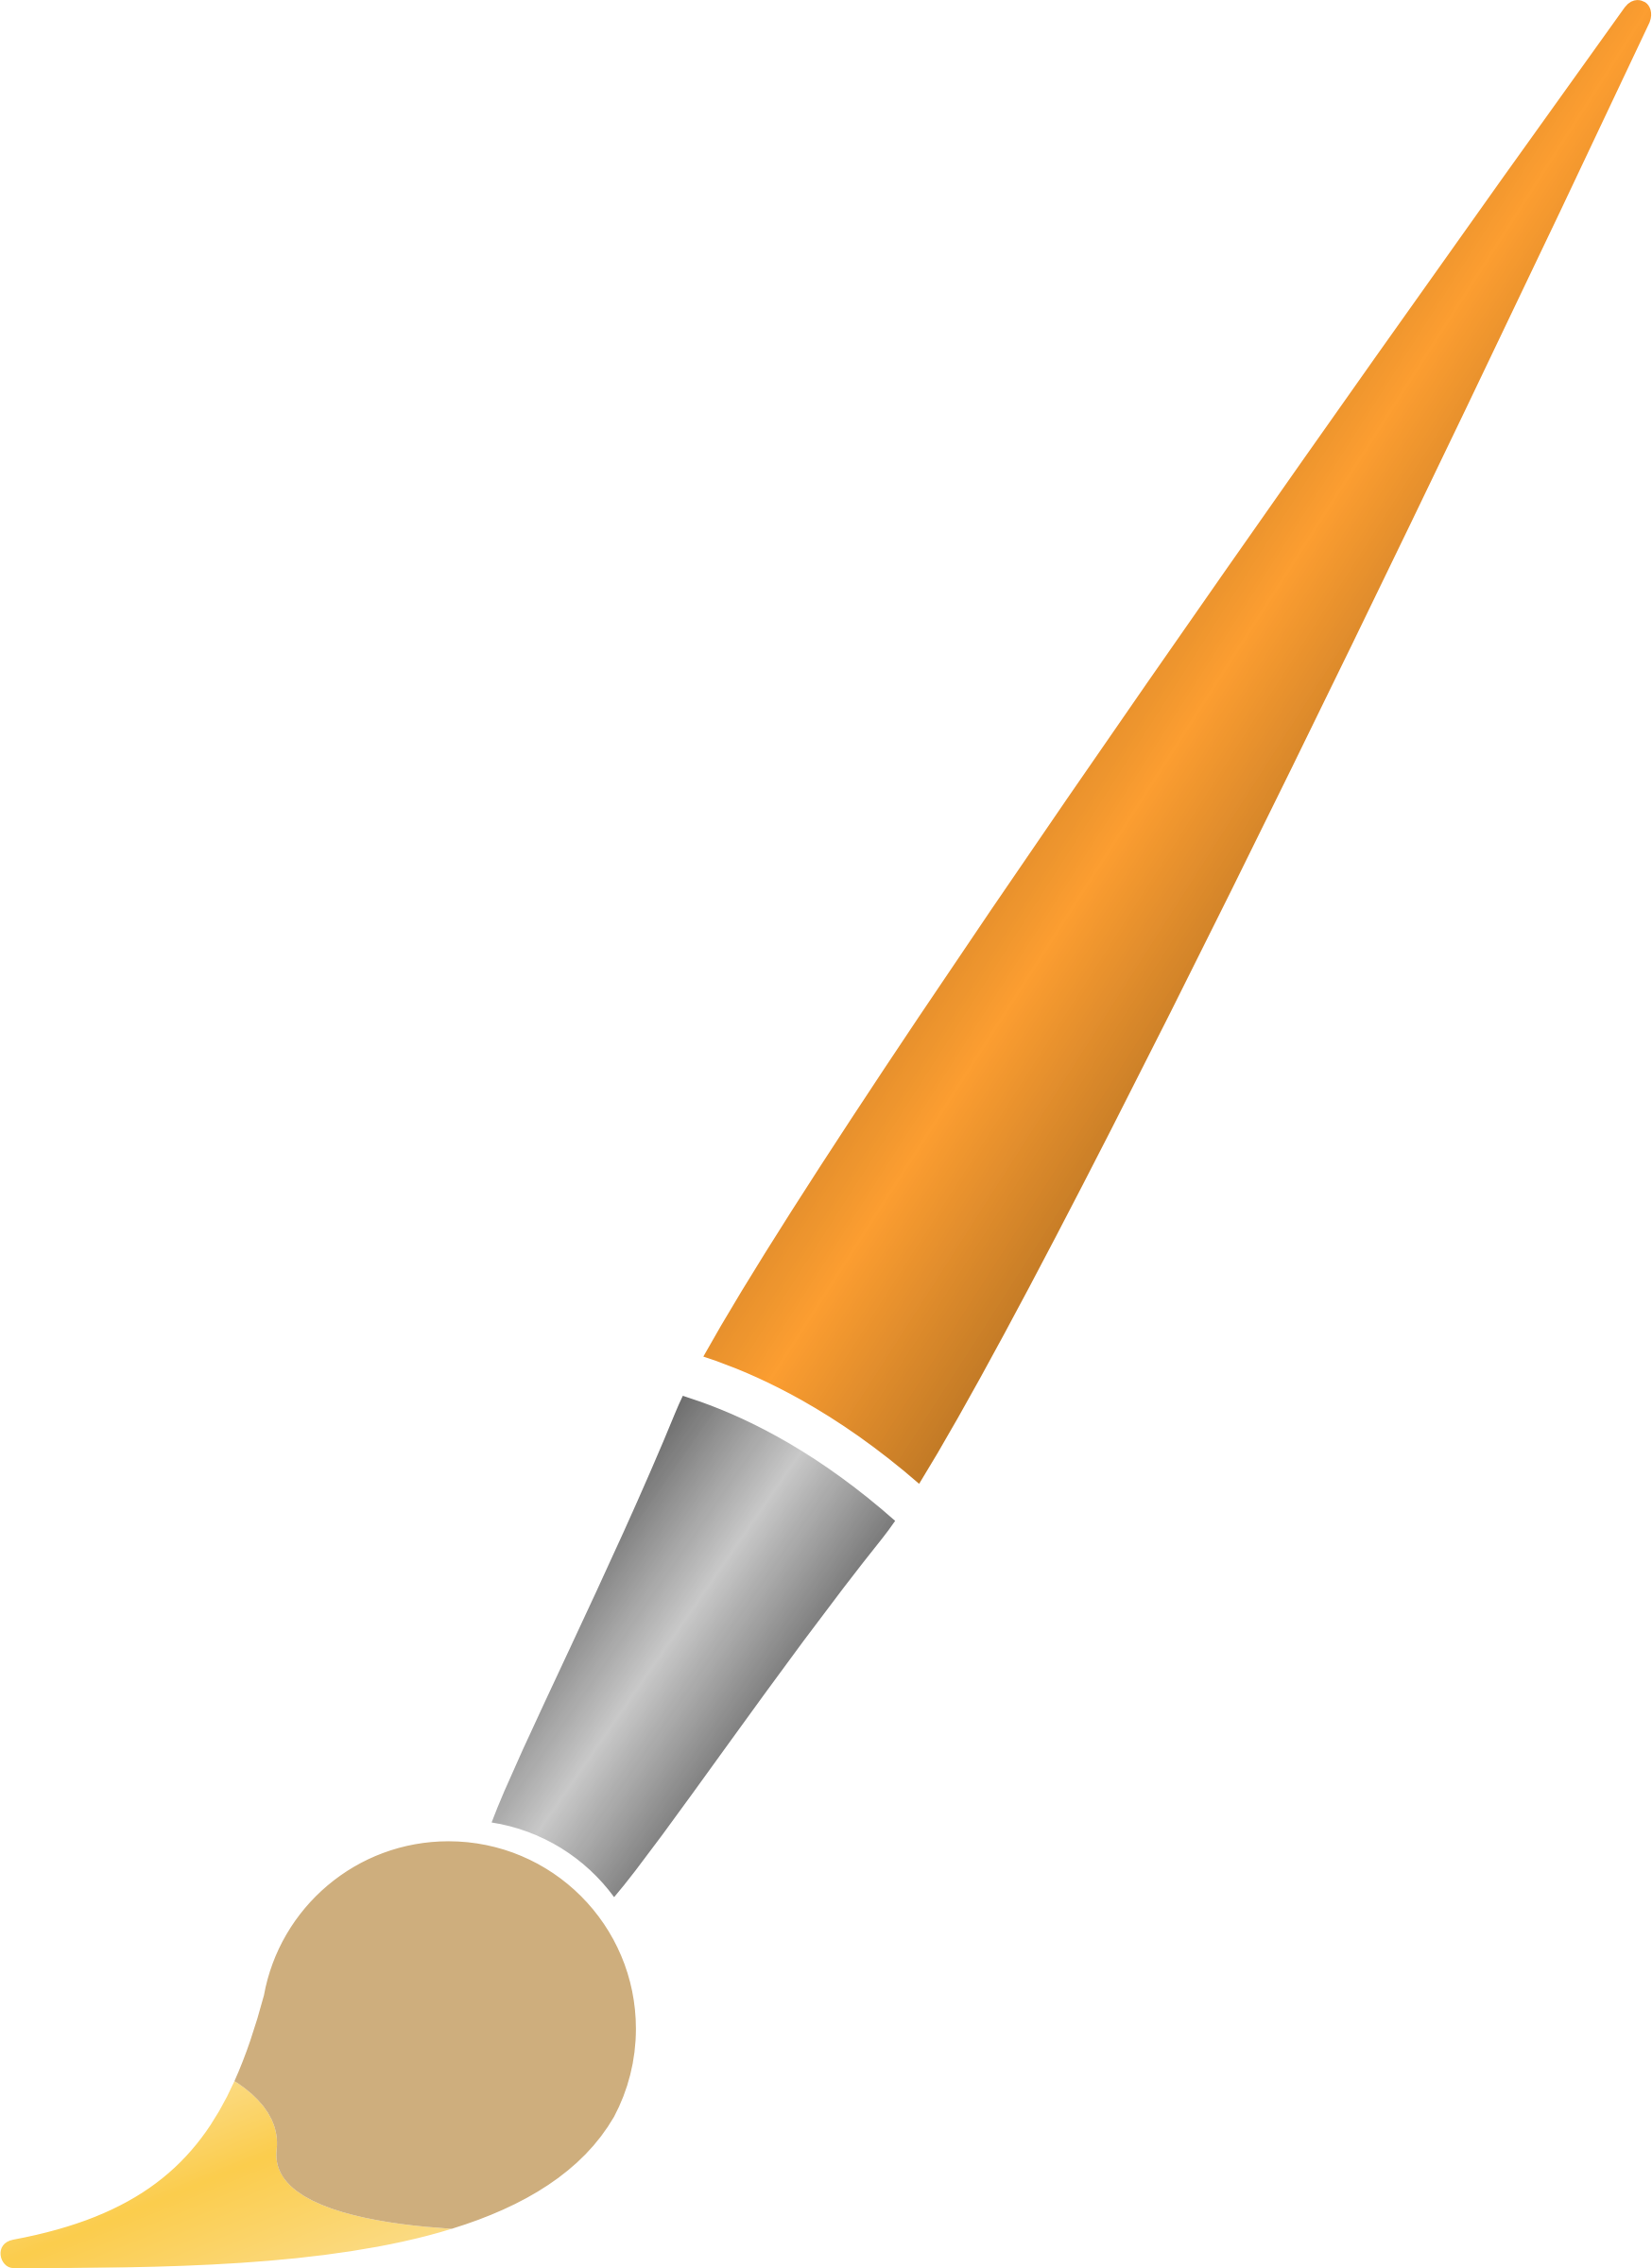 Transparent paintbrush clipart paint. Brush with yellow dye